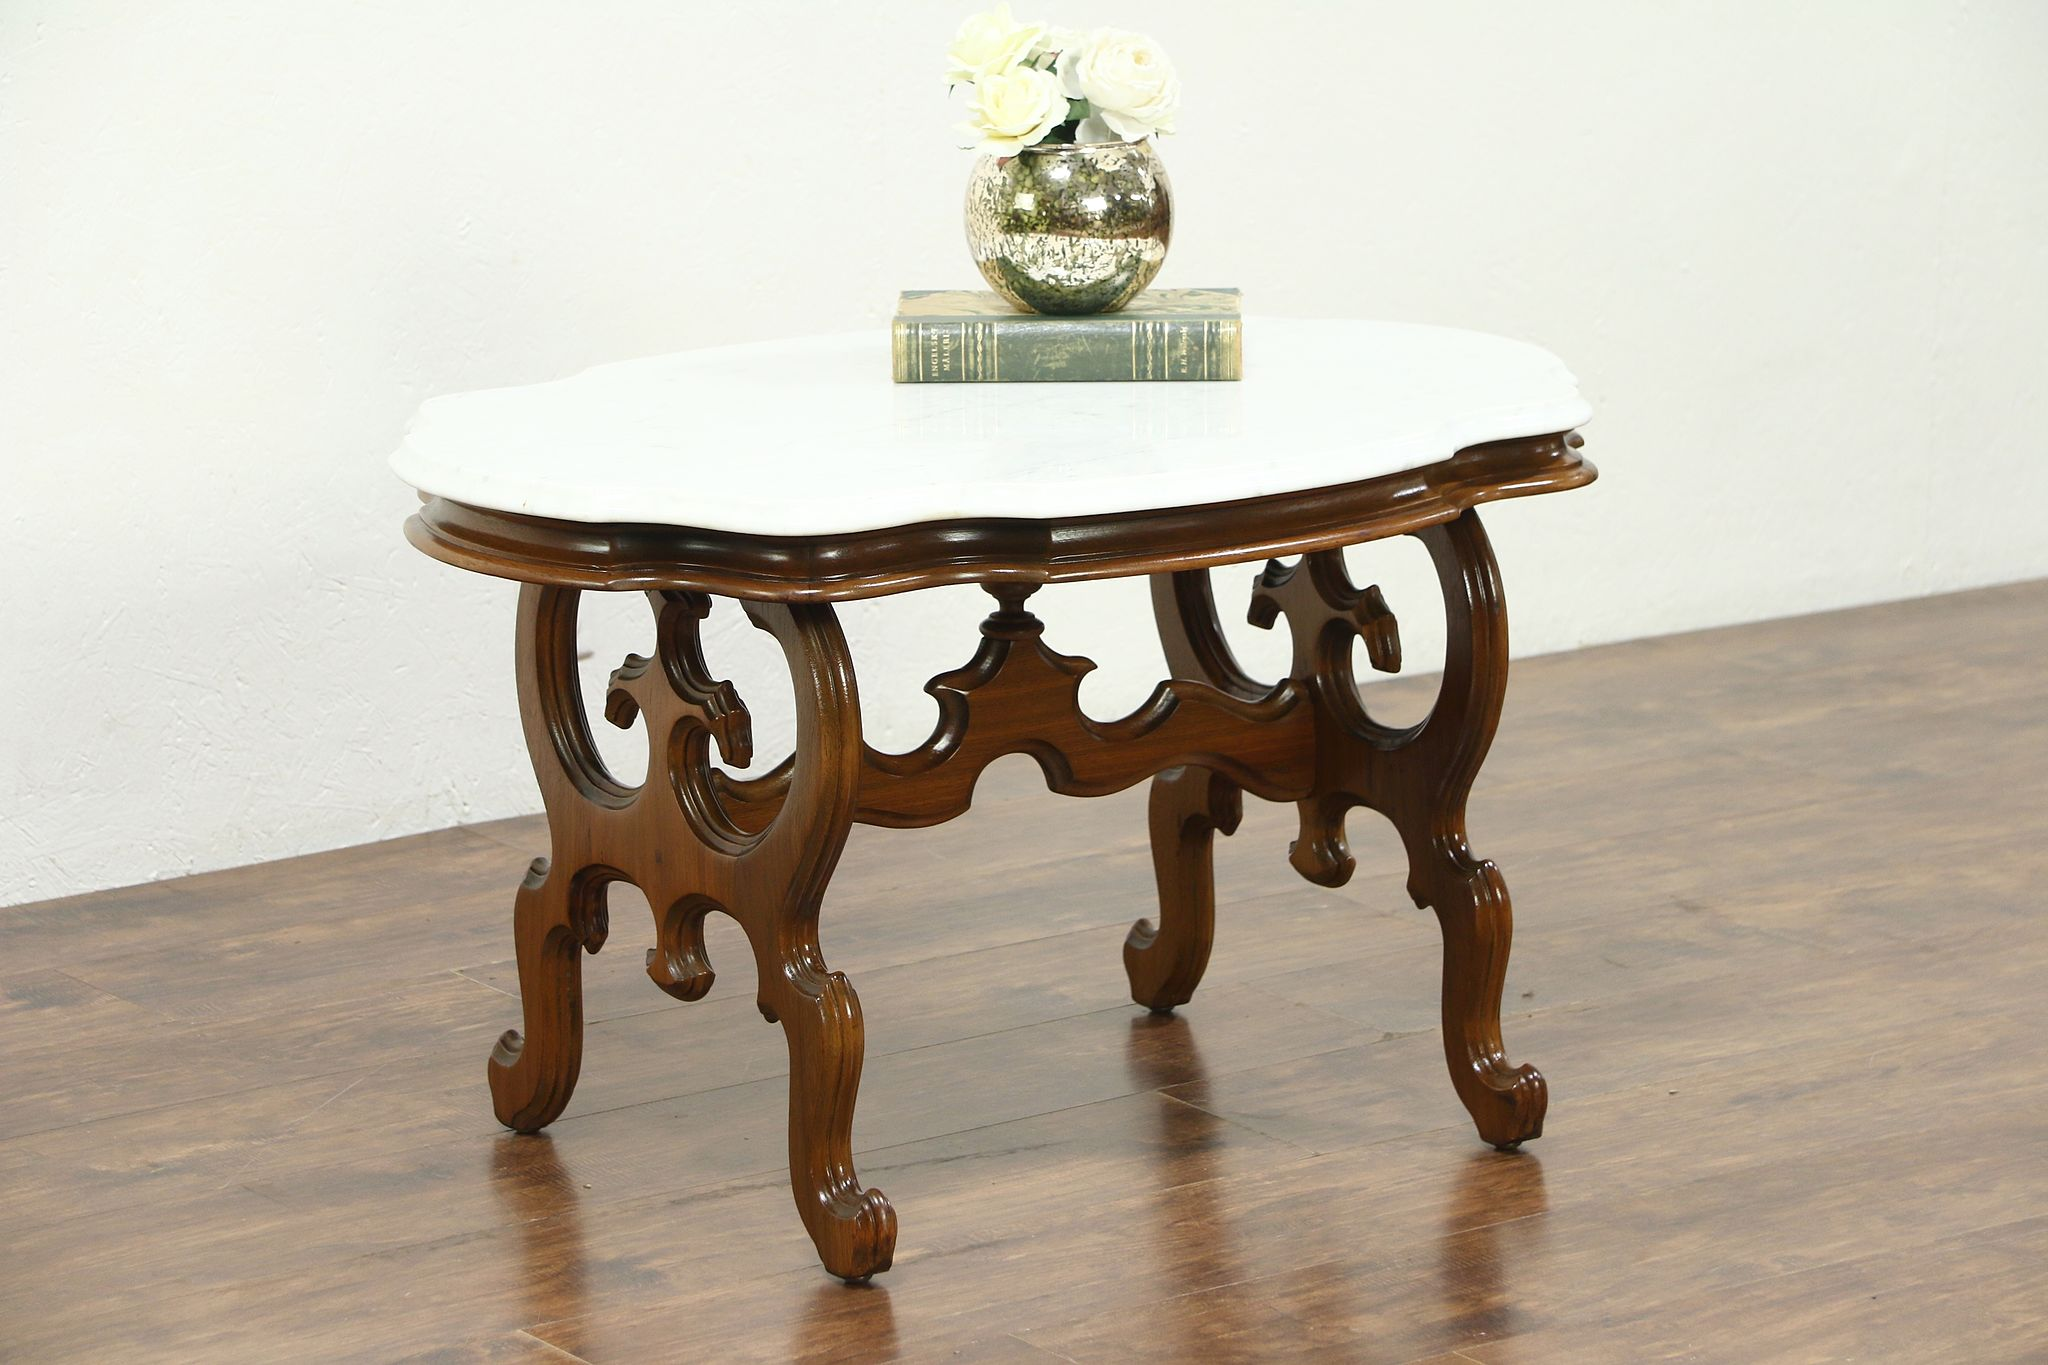 Gentil Victorian Marble Top Walnut Coffee Table From 1860u0027s Antique #28722